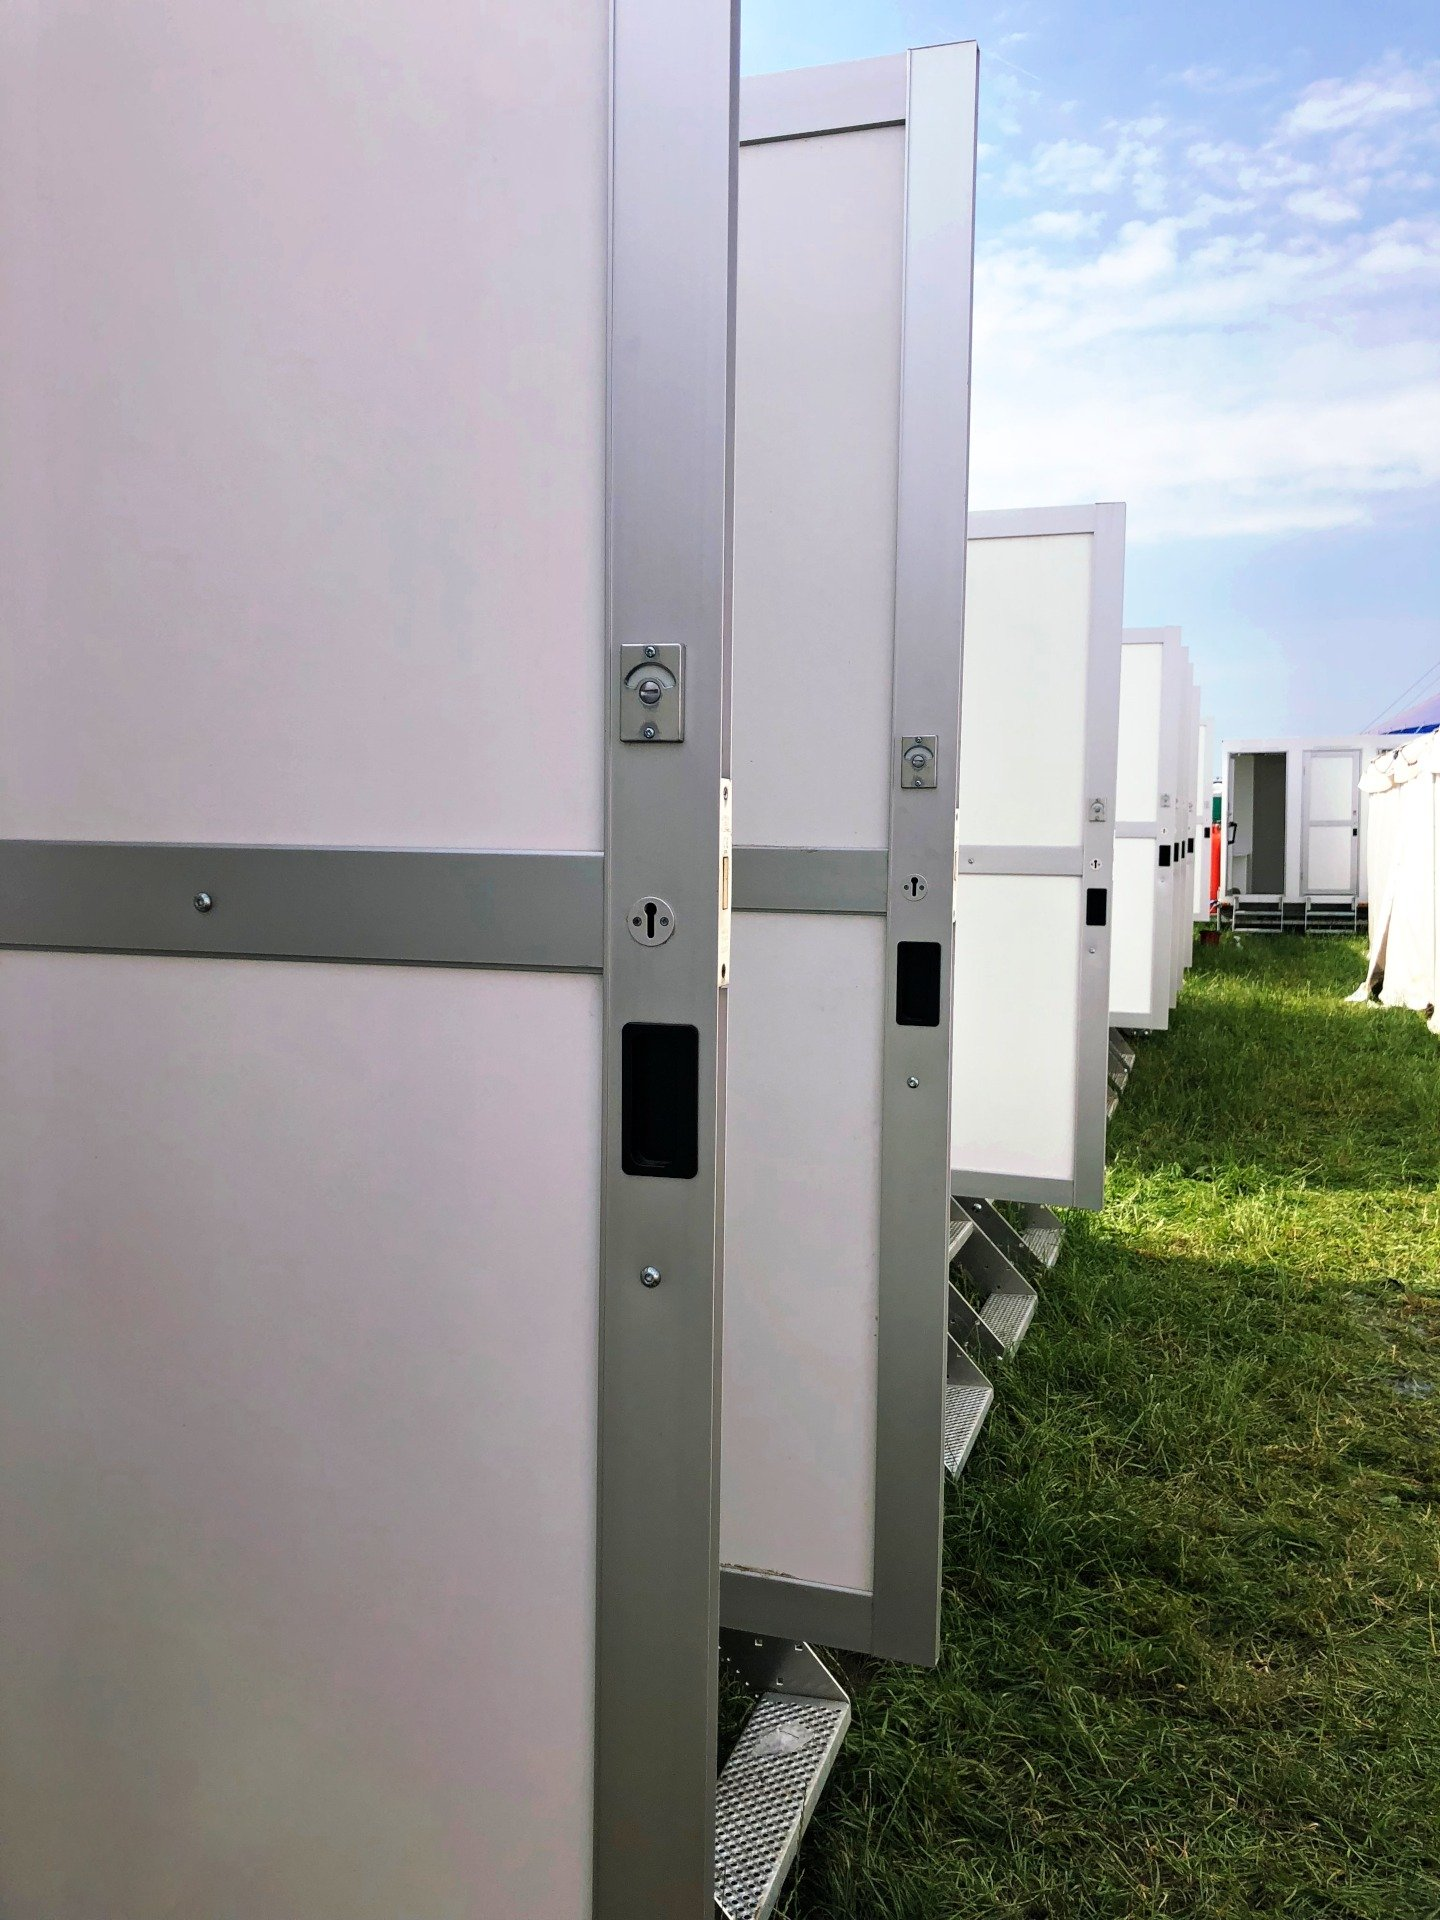 Download Festival Trailers Showers Toilets WC Hire Rental